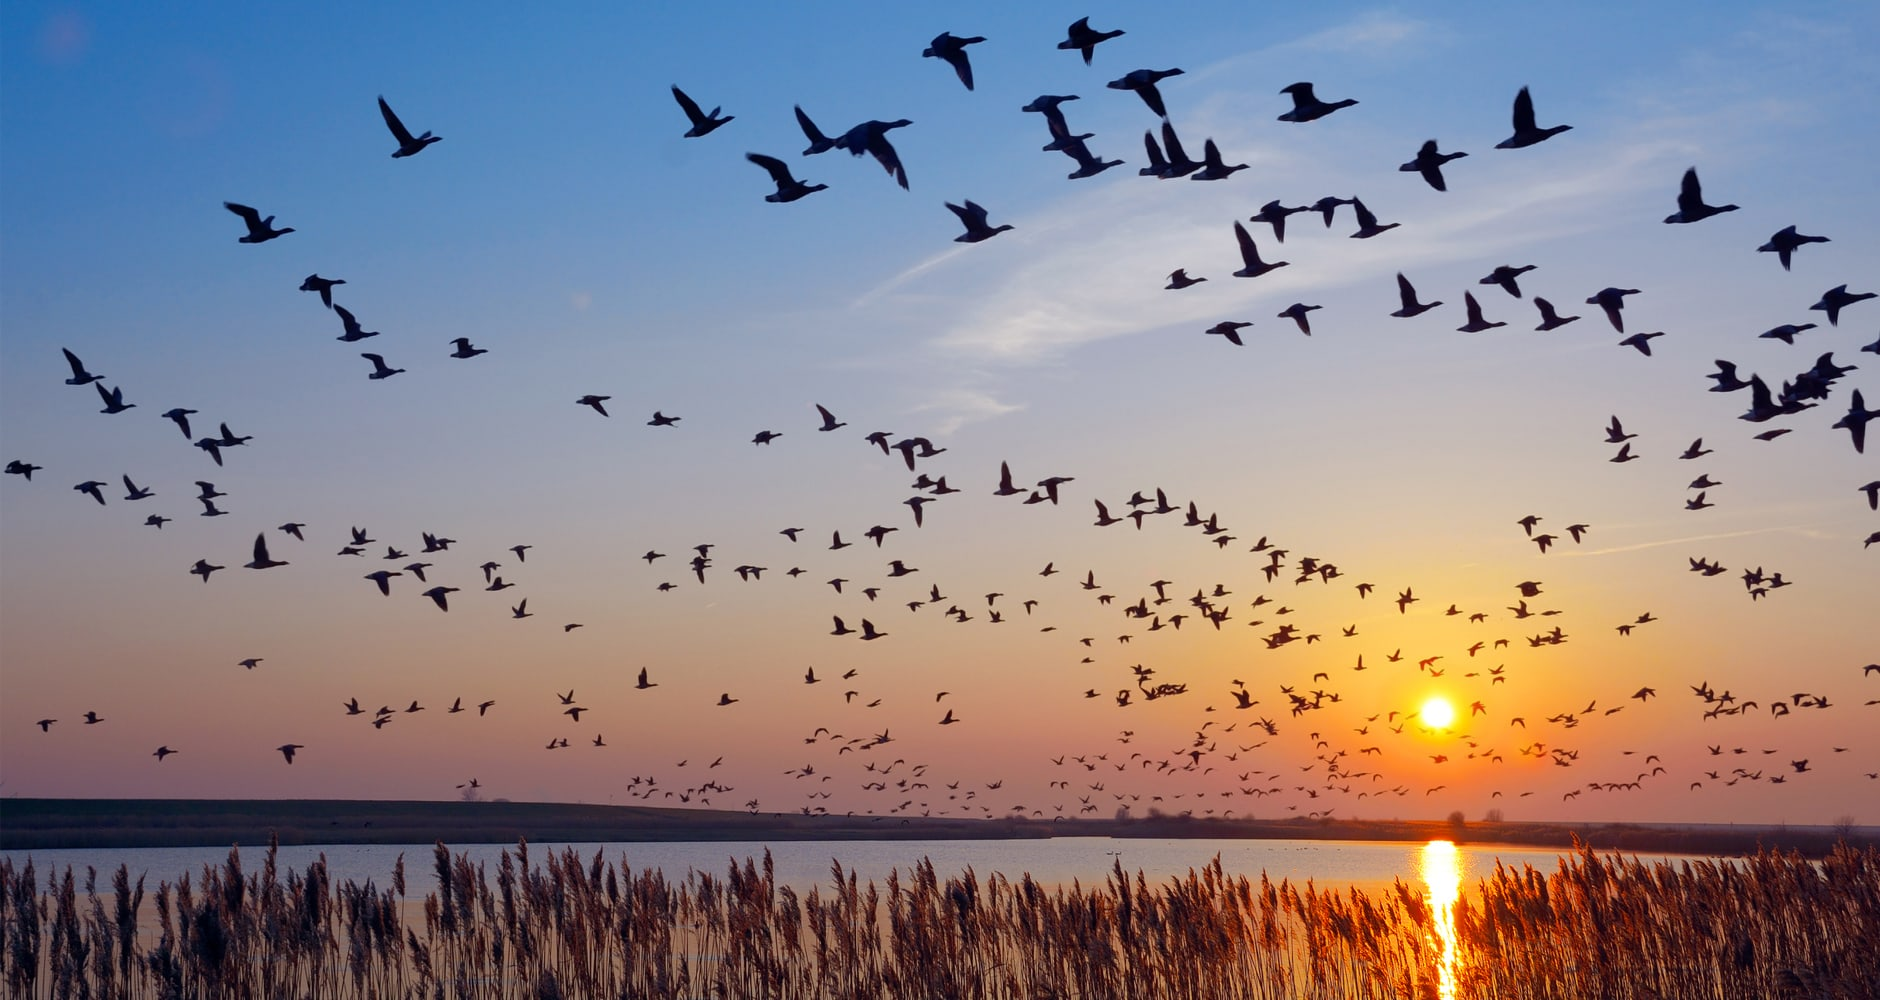 geese flying south at sunset